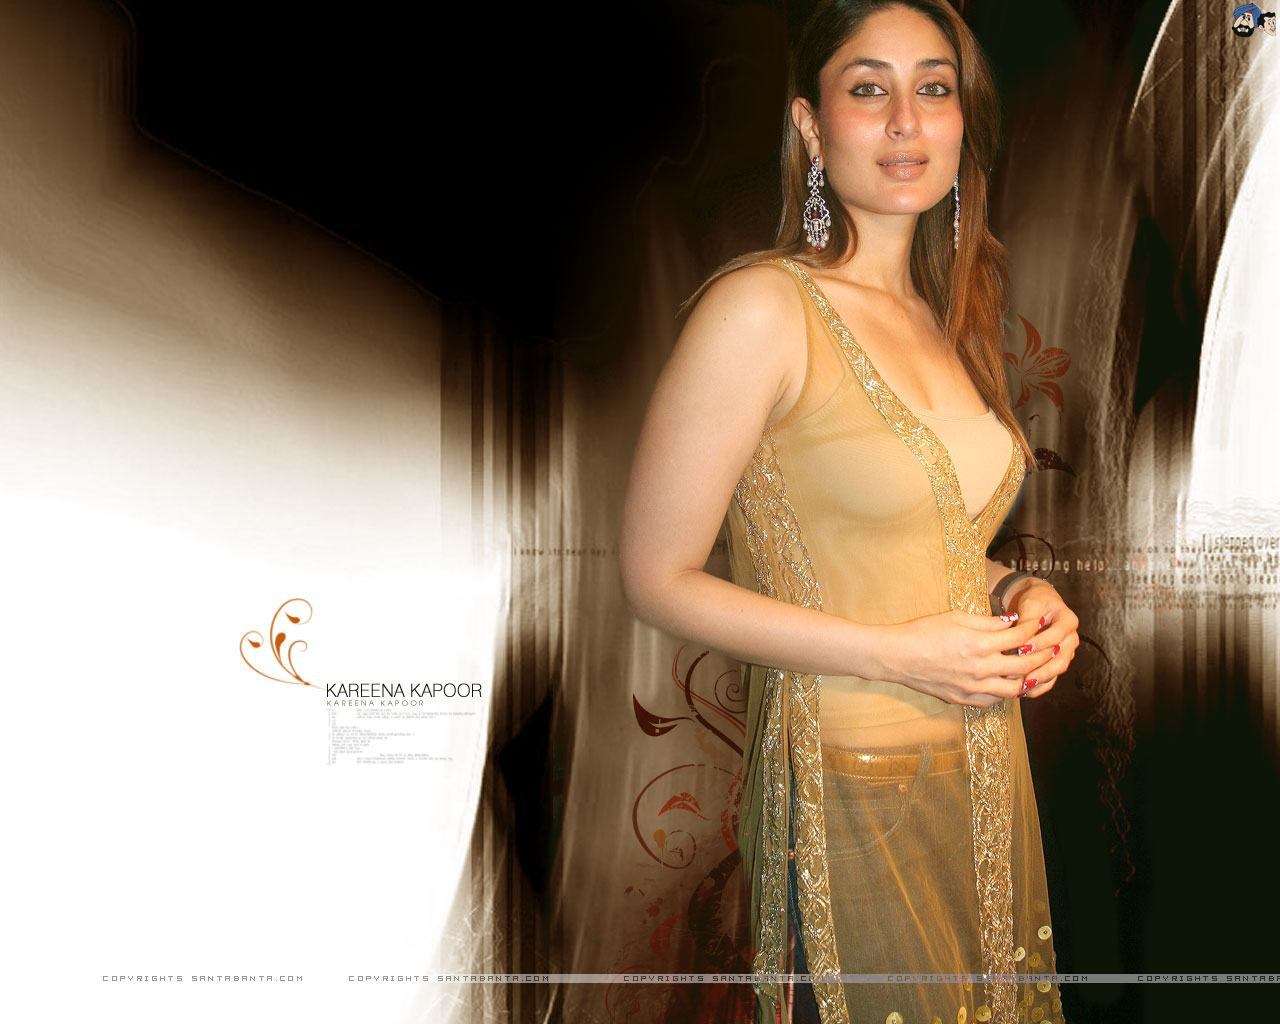 Wallpapers Backgrounds   HD wallpapers Gallery Actress Kareena Kapoor 1280x1024